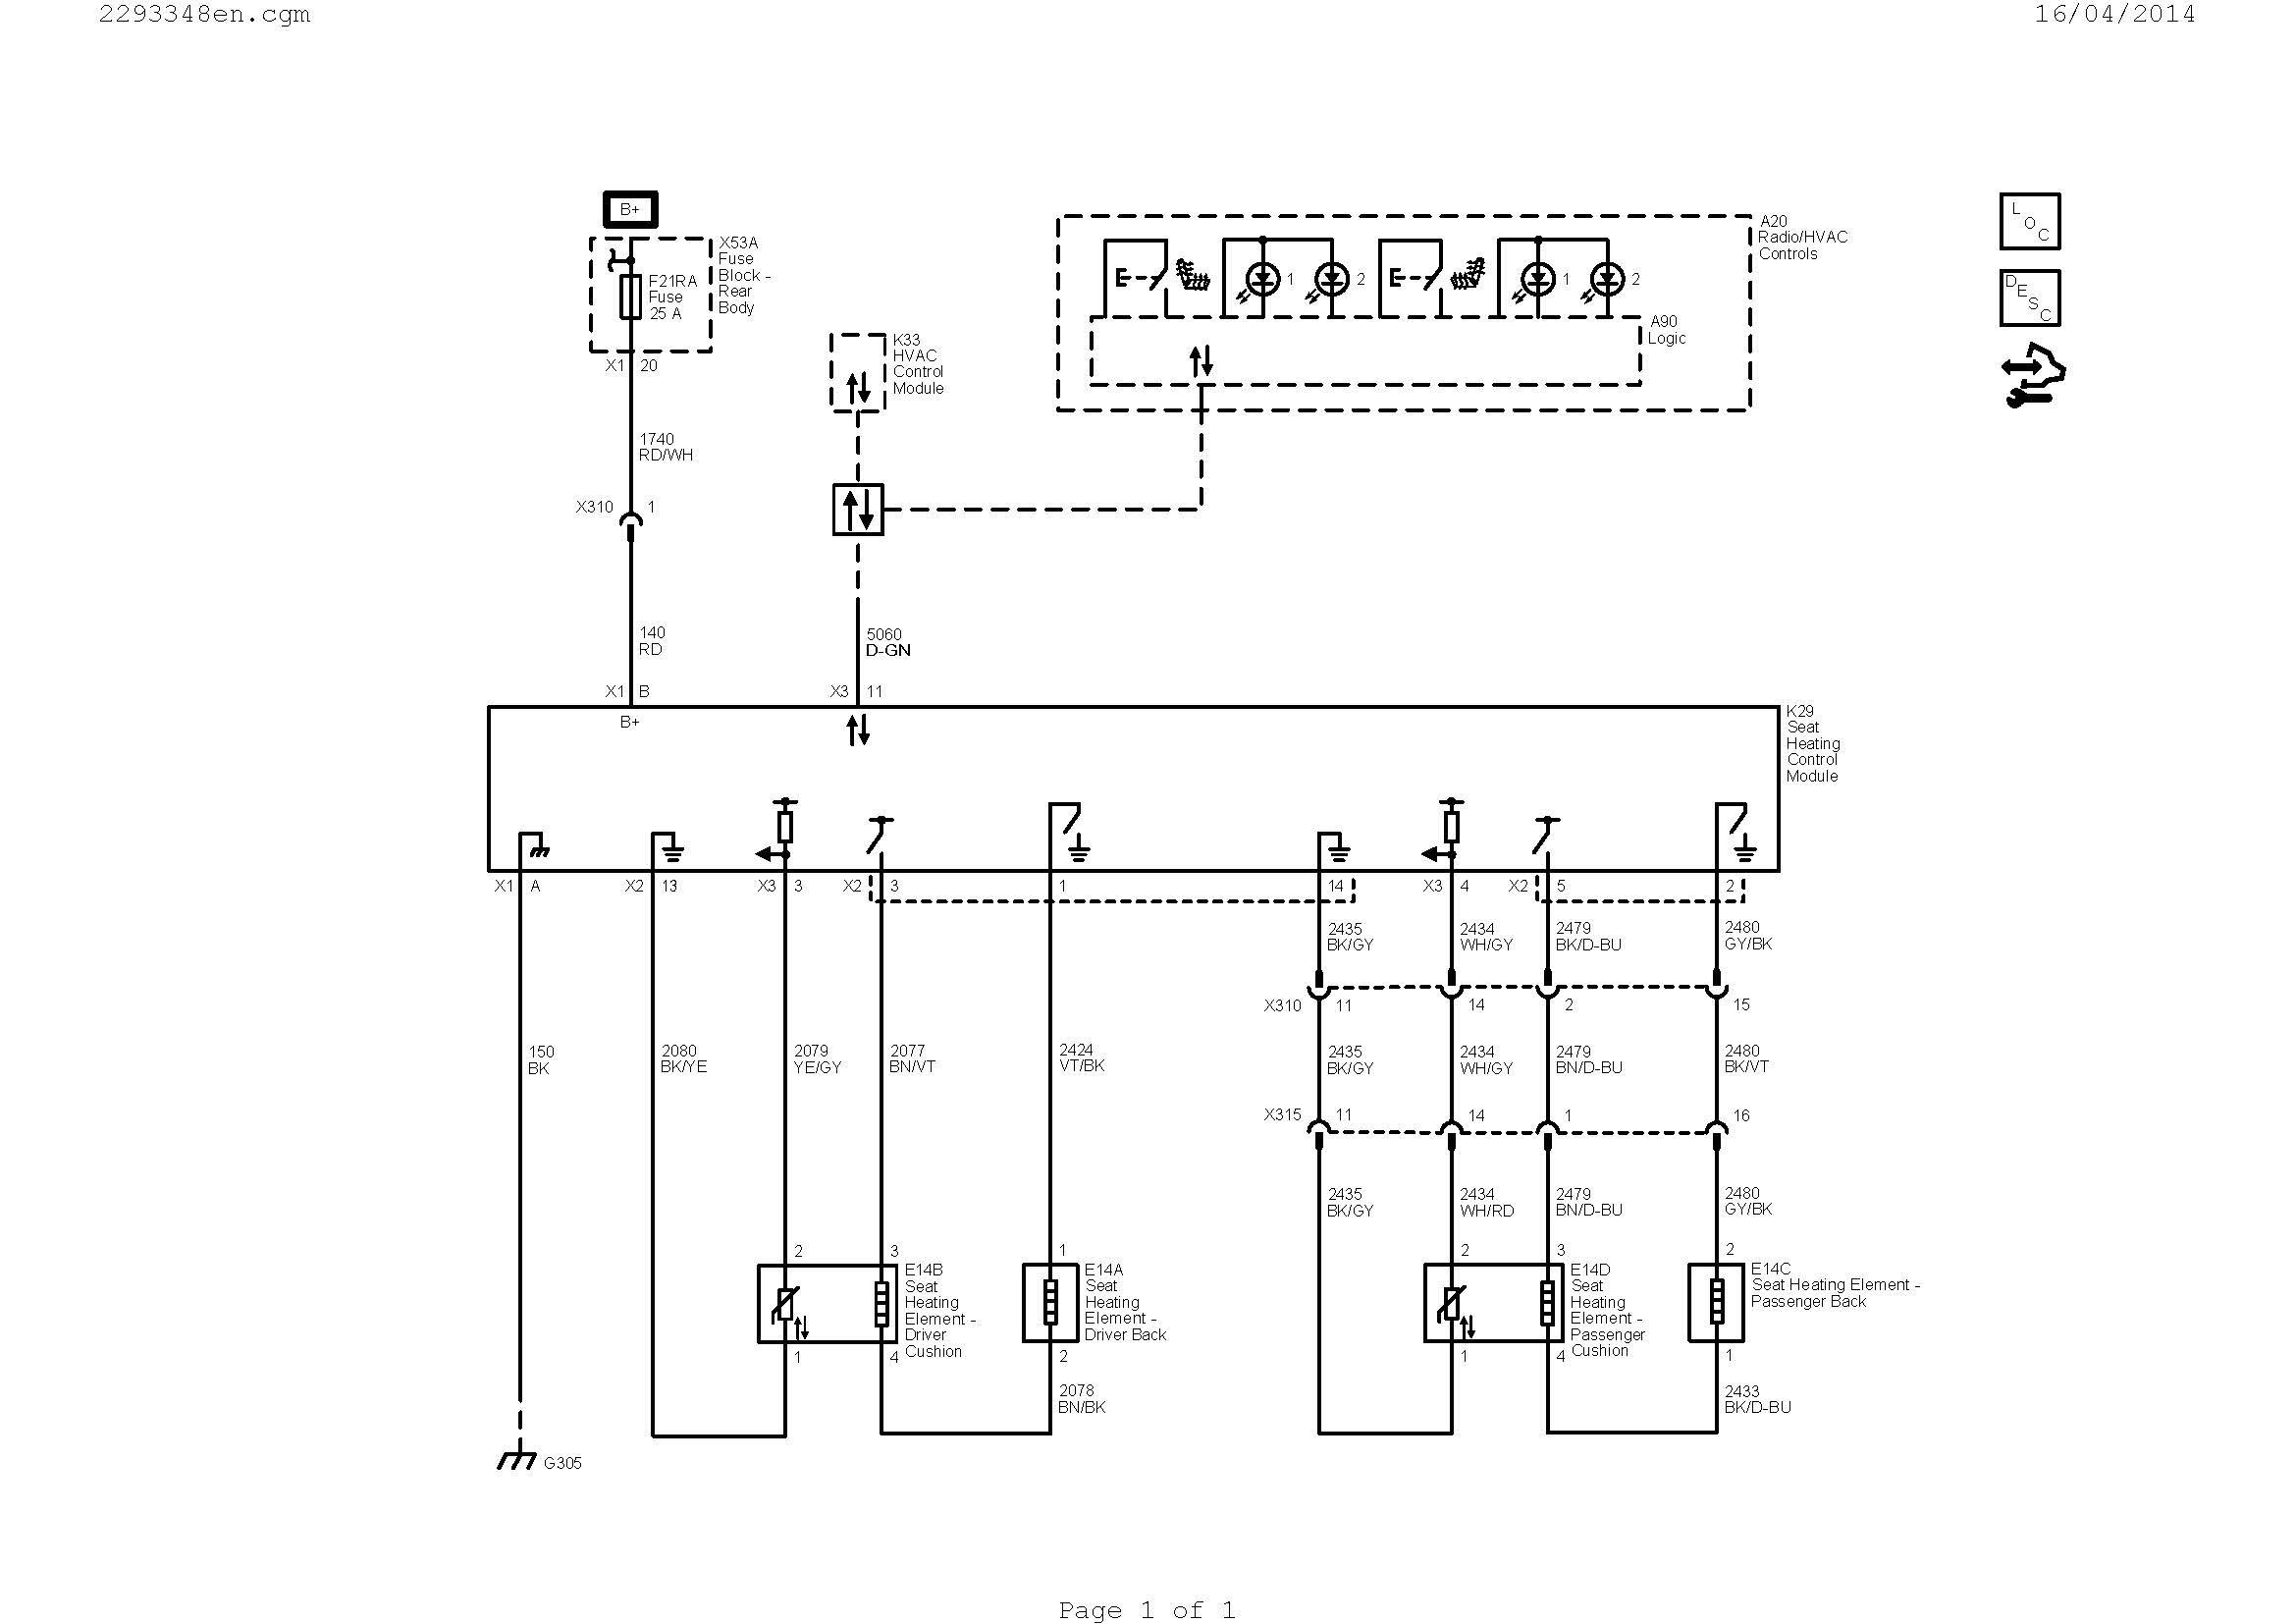 acme transformer t 1 81051 wiring diagram Collection-fan wiring diagram Collection Wiring Diagram For Changeover Relay Inspirationa Wiring Diagram Ac Valid Hvac DOWNLOAD Wiring Diagram 20-r